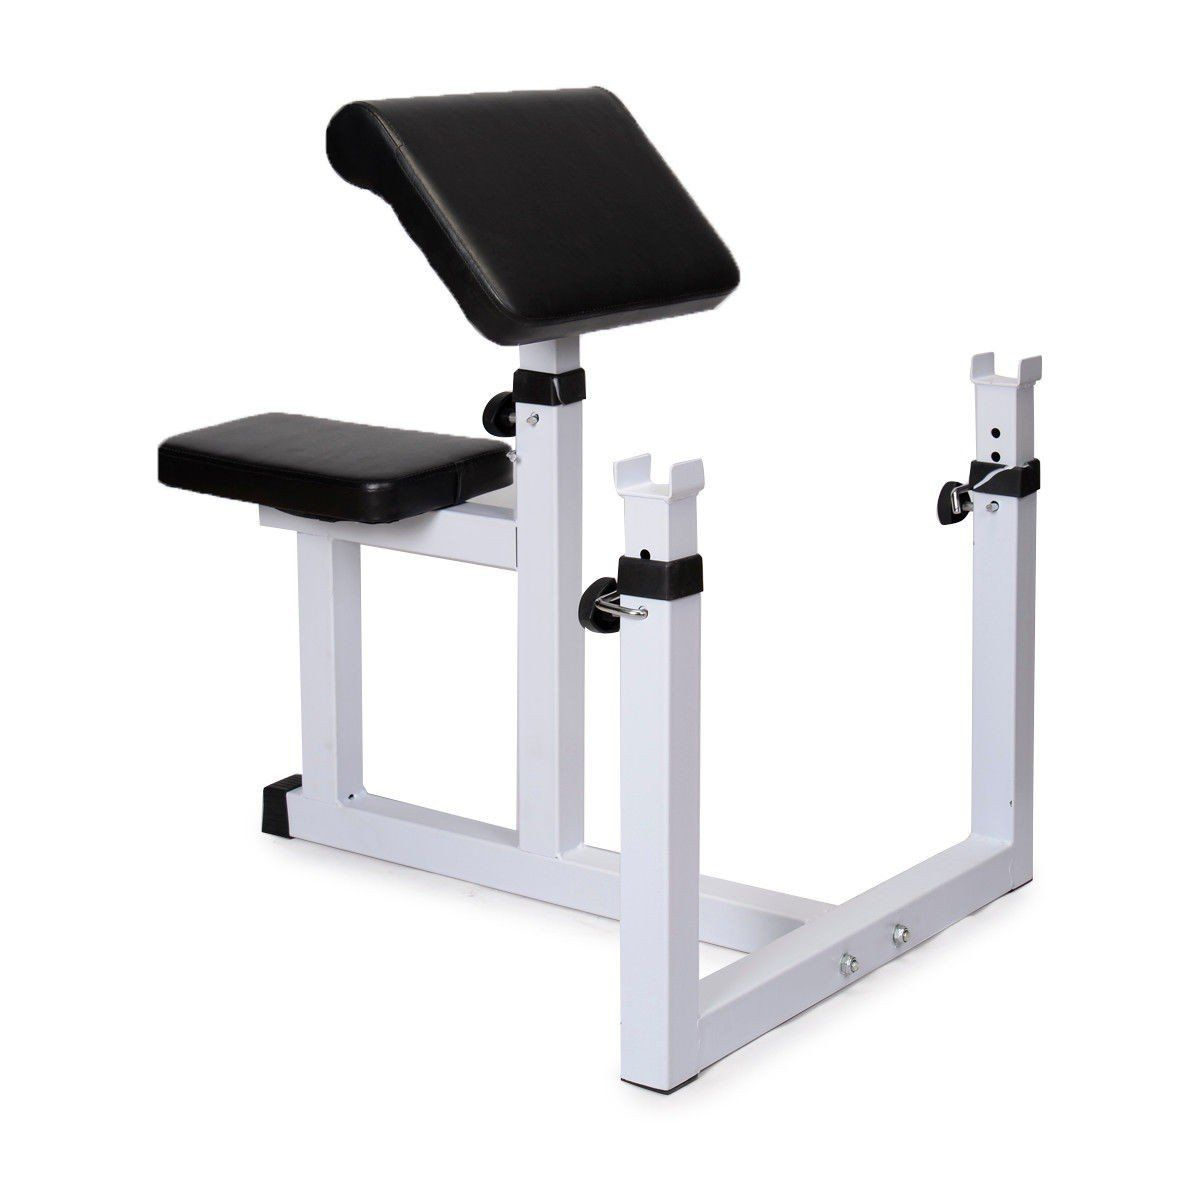 Apontus Seated Preacher Curl Weight Bench 2 Thickness Cushion Max Loading 440 Lbs High Density Tapered Dua Preacher Curls Weight Benches Home Gym Bench